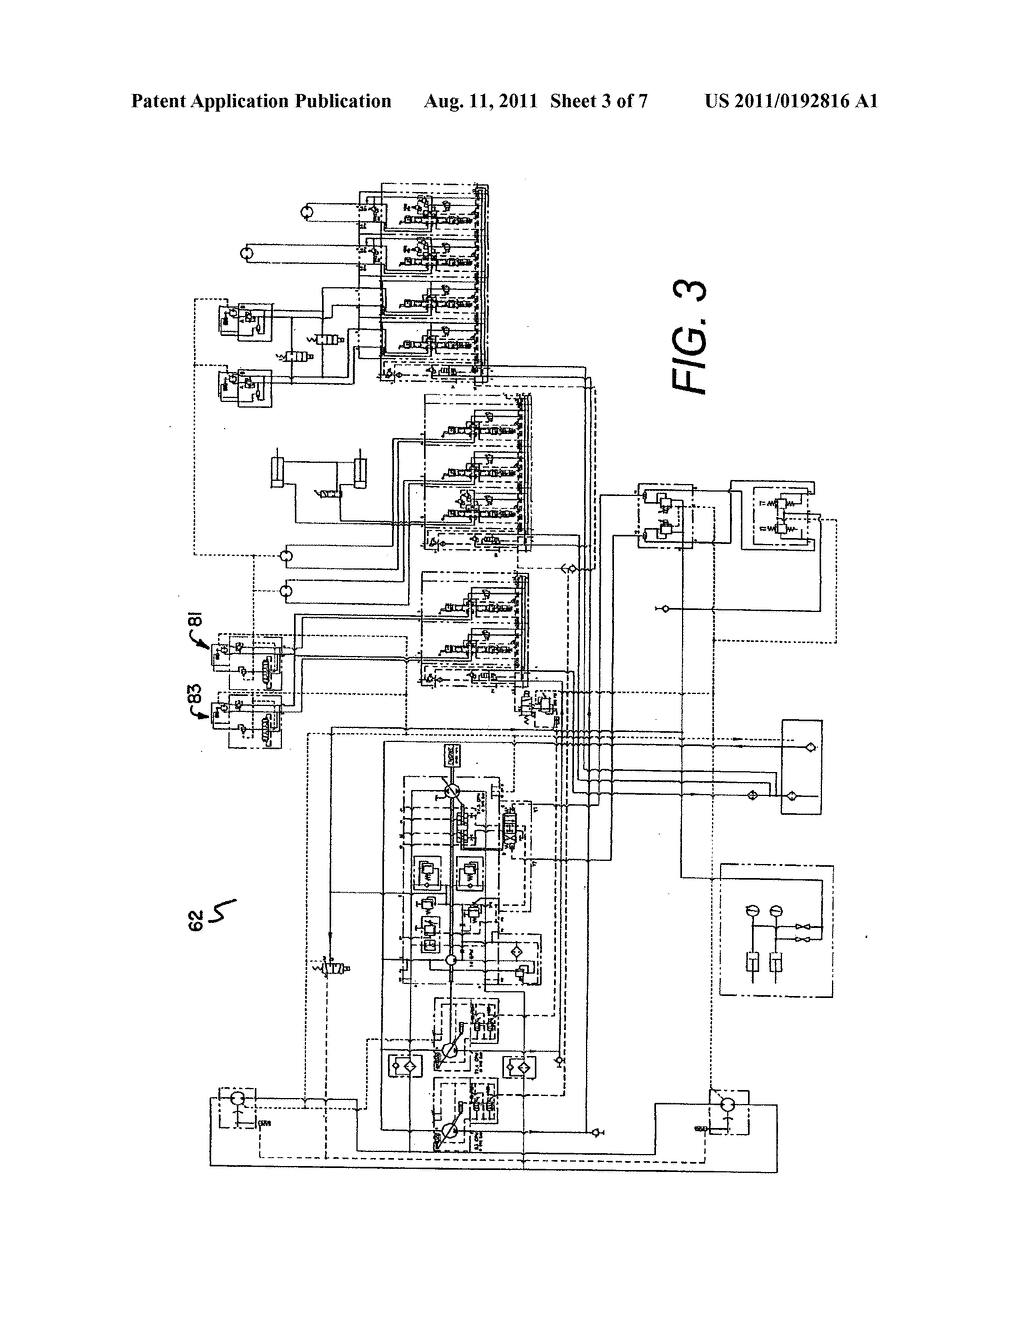 Powered Auxiliary Hoist Mechanism For A Gantry Crane Diagram Overhead Schematic And Image 04